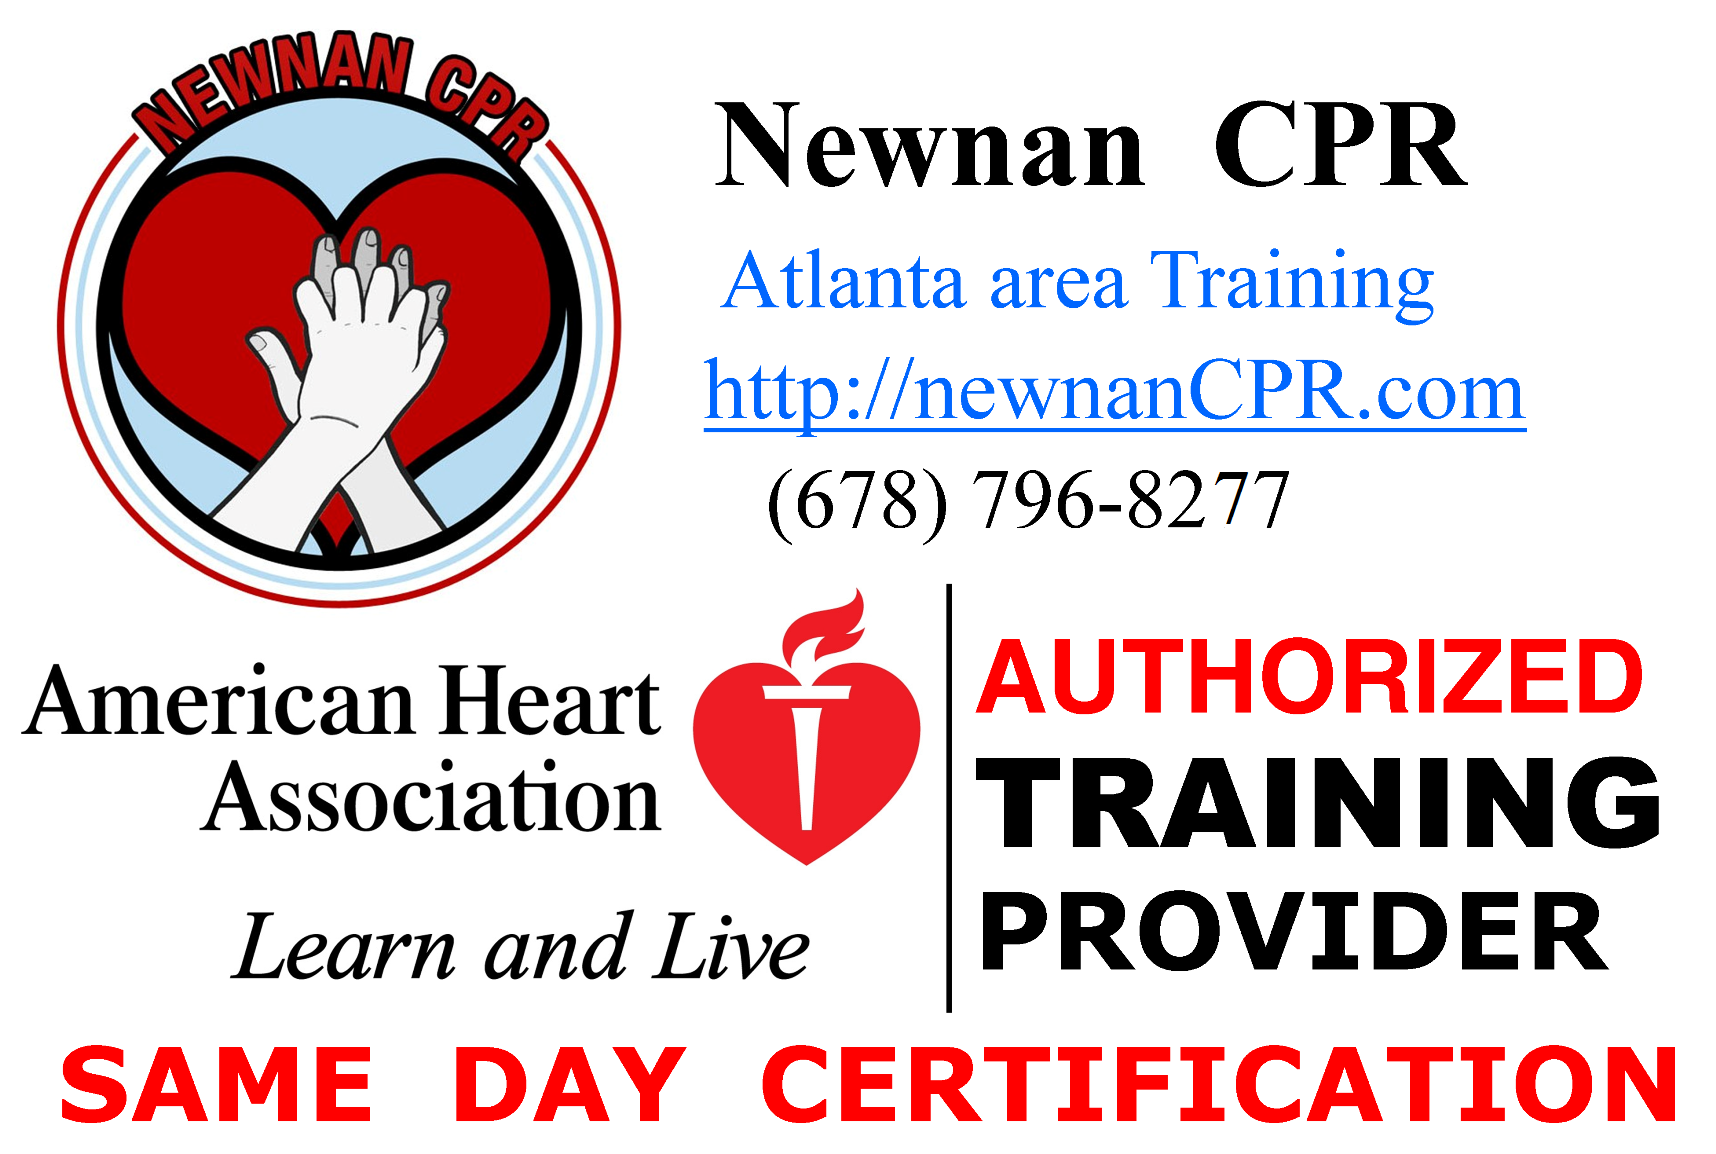 Newnan CPR is an authorized AHA Training Site